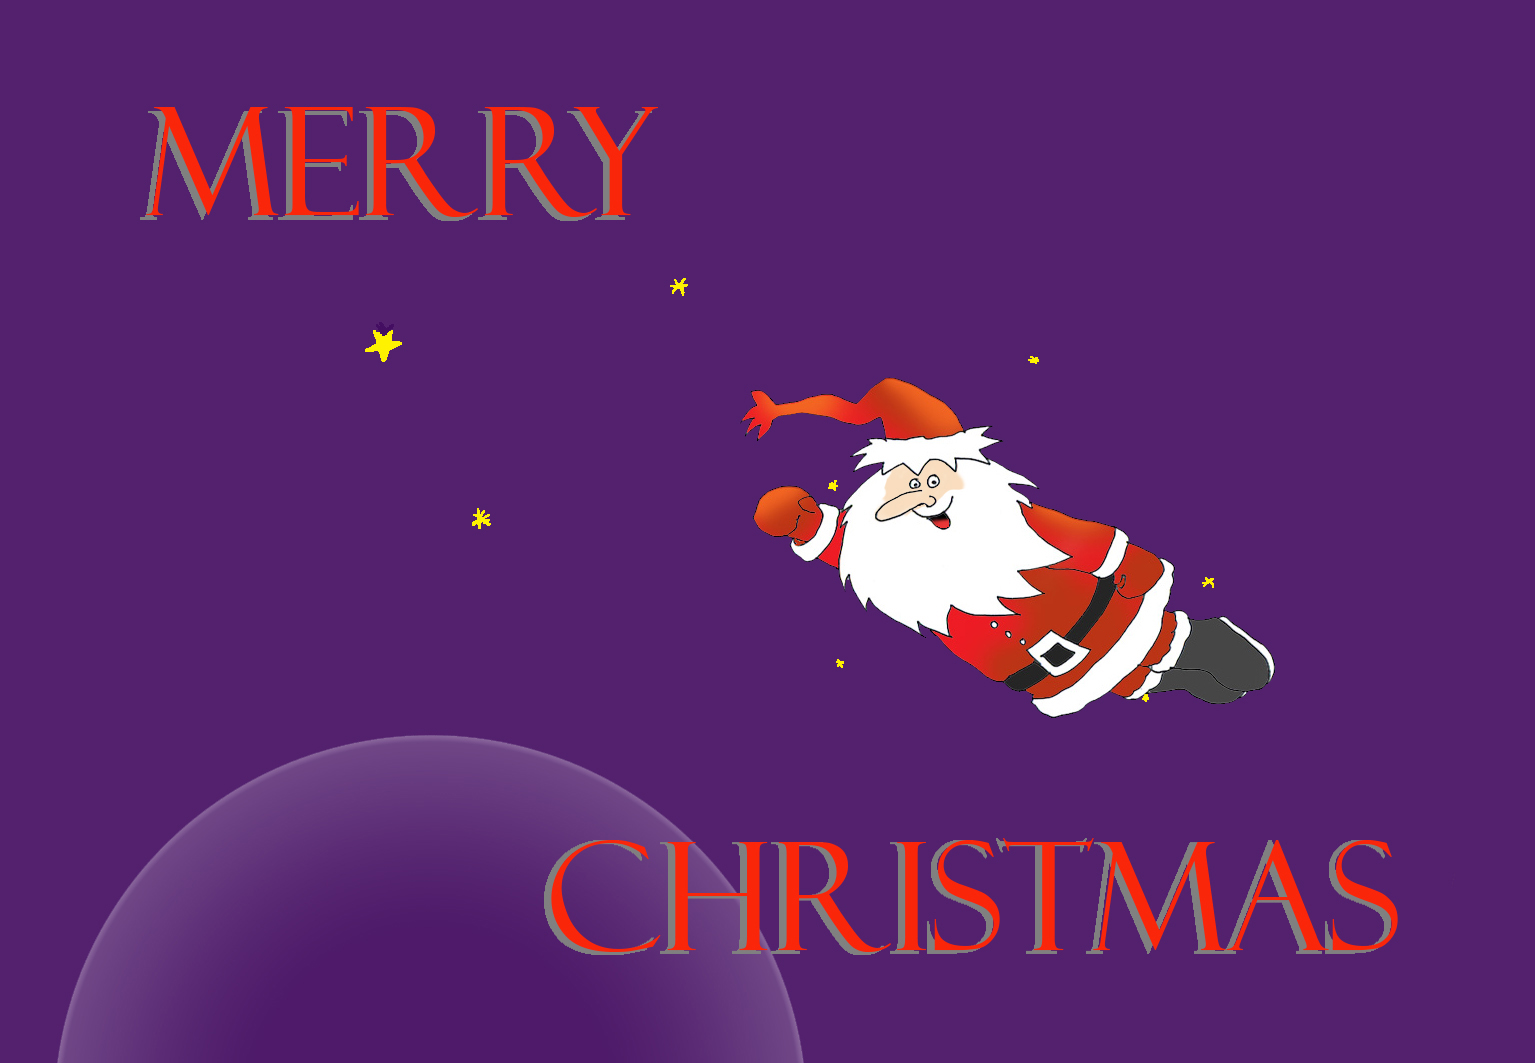 Printable Christmas greeting card Santa in space